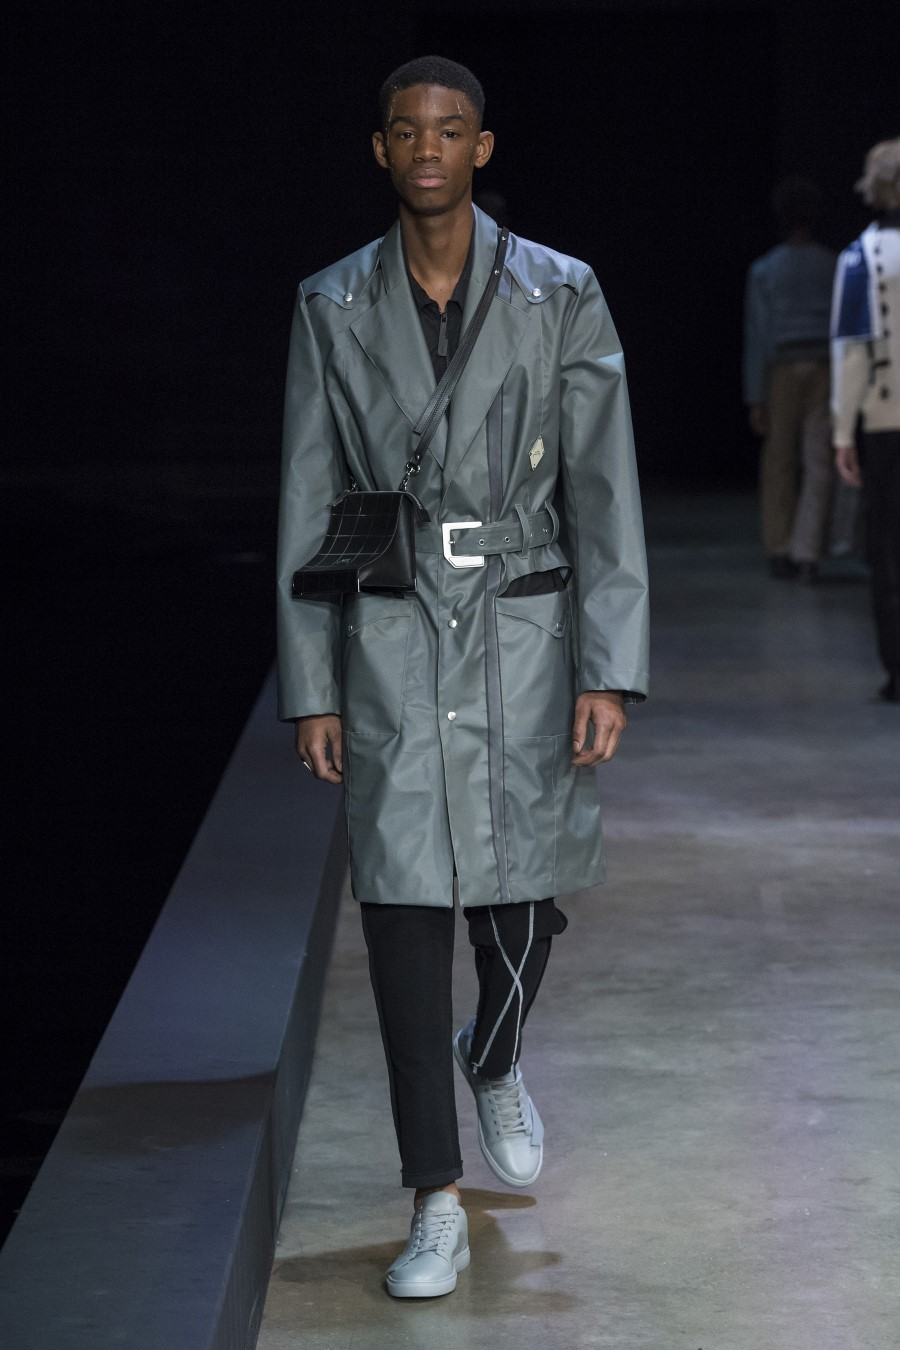 A-COLD-WALL* Fall Winter 2019 – London Fashion Week Men's